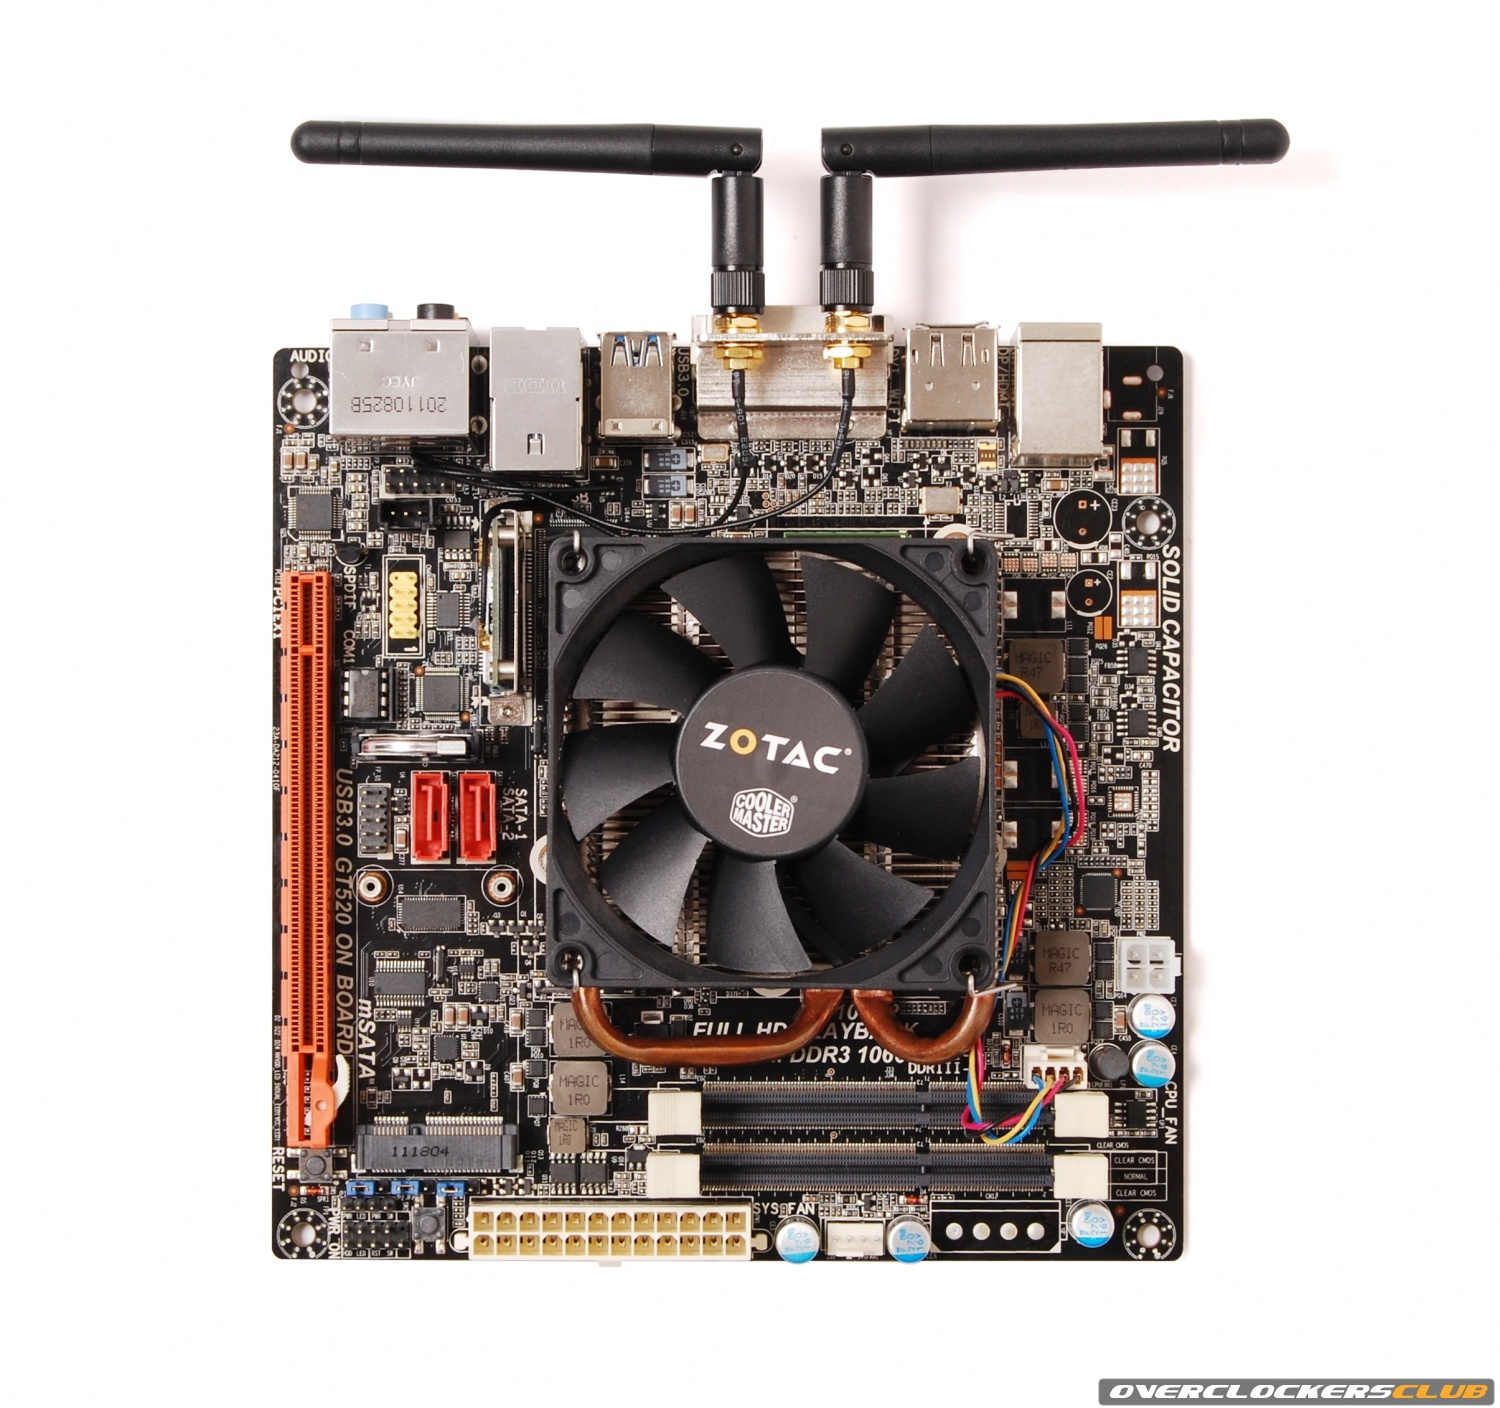 ZOTAC Announces D2700-ITX WiFi Supreme for HTPC Applications